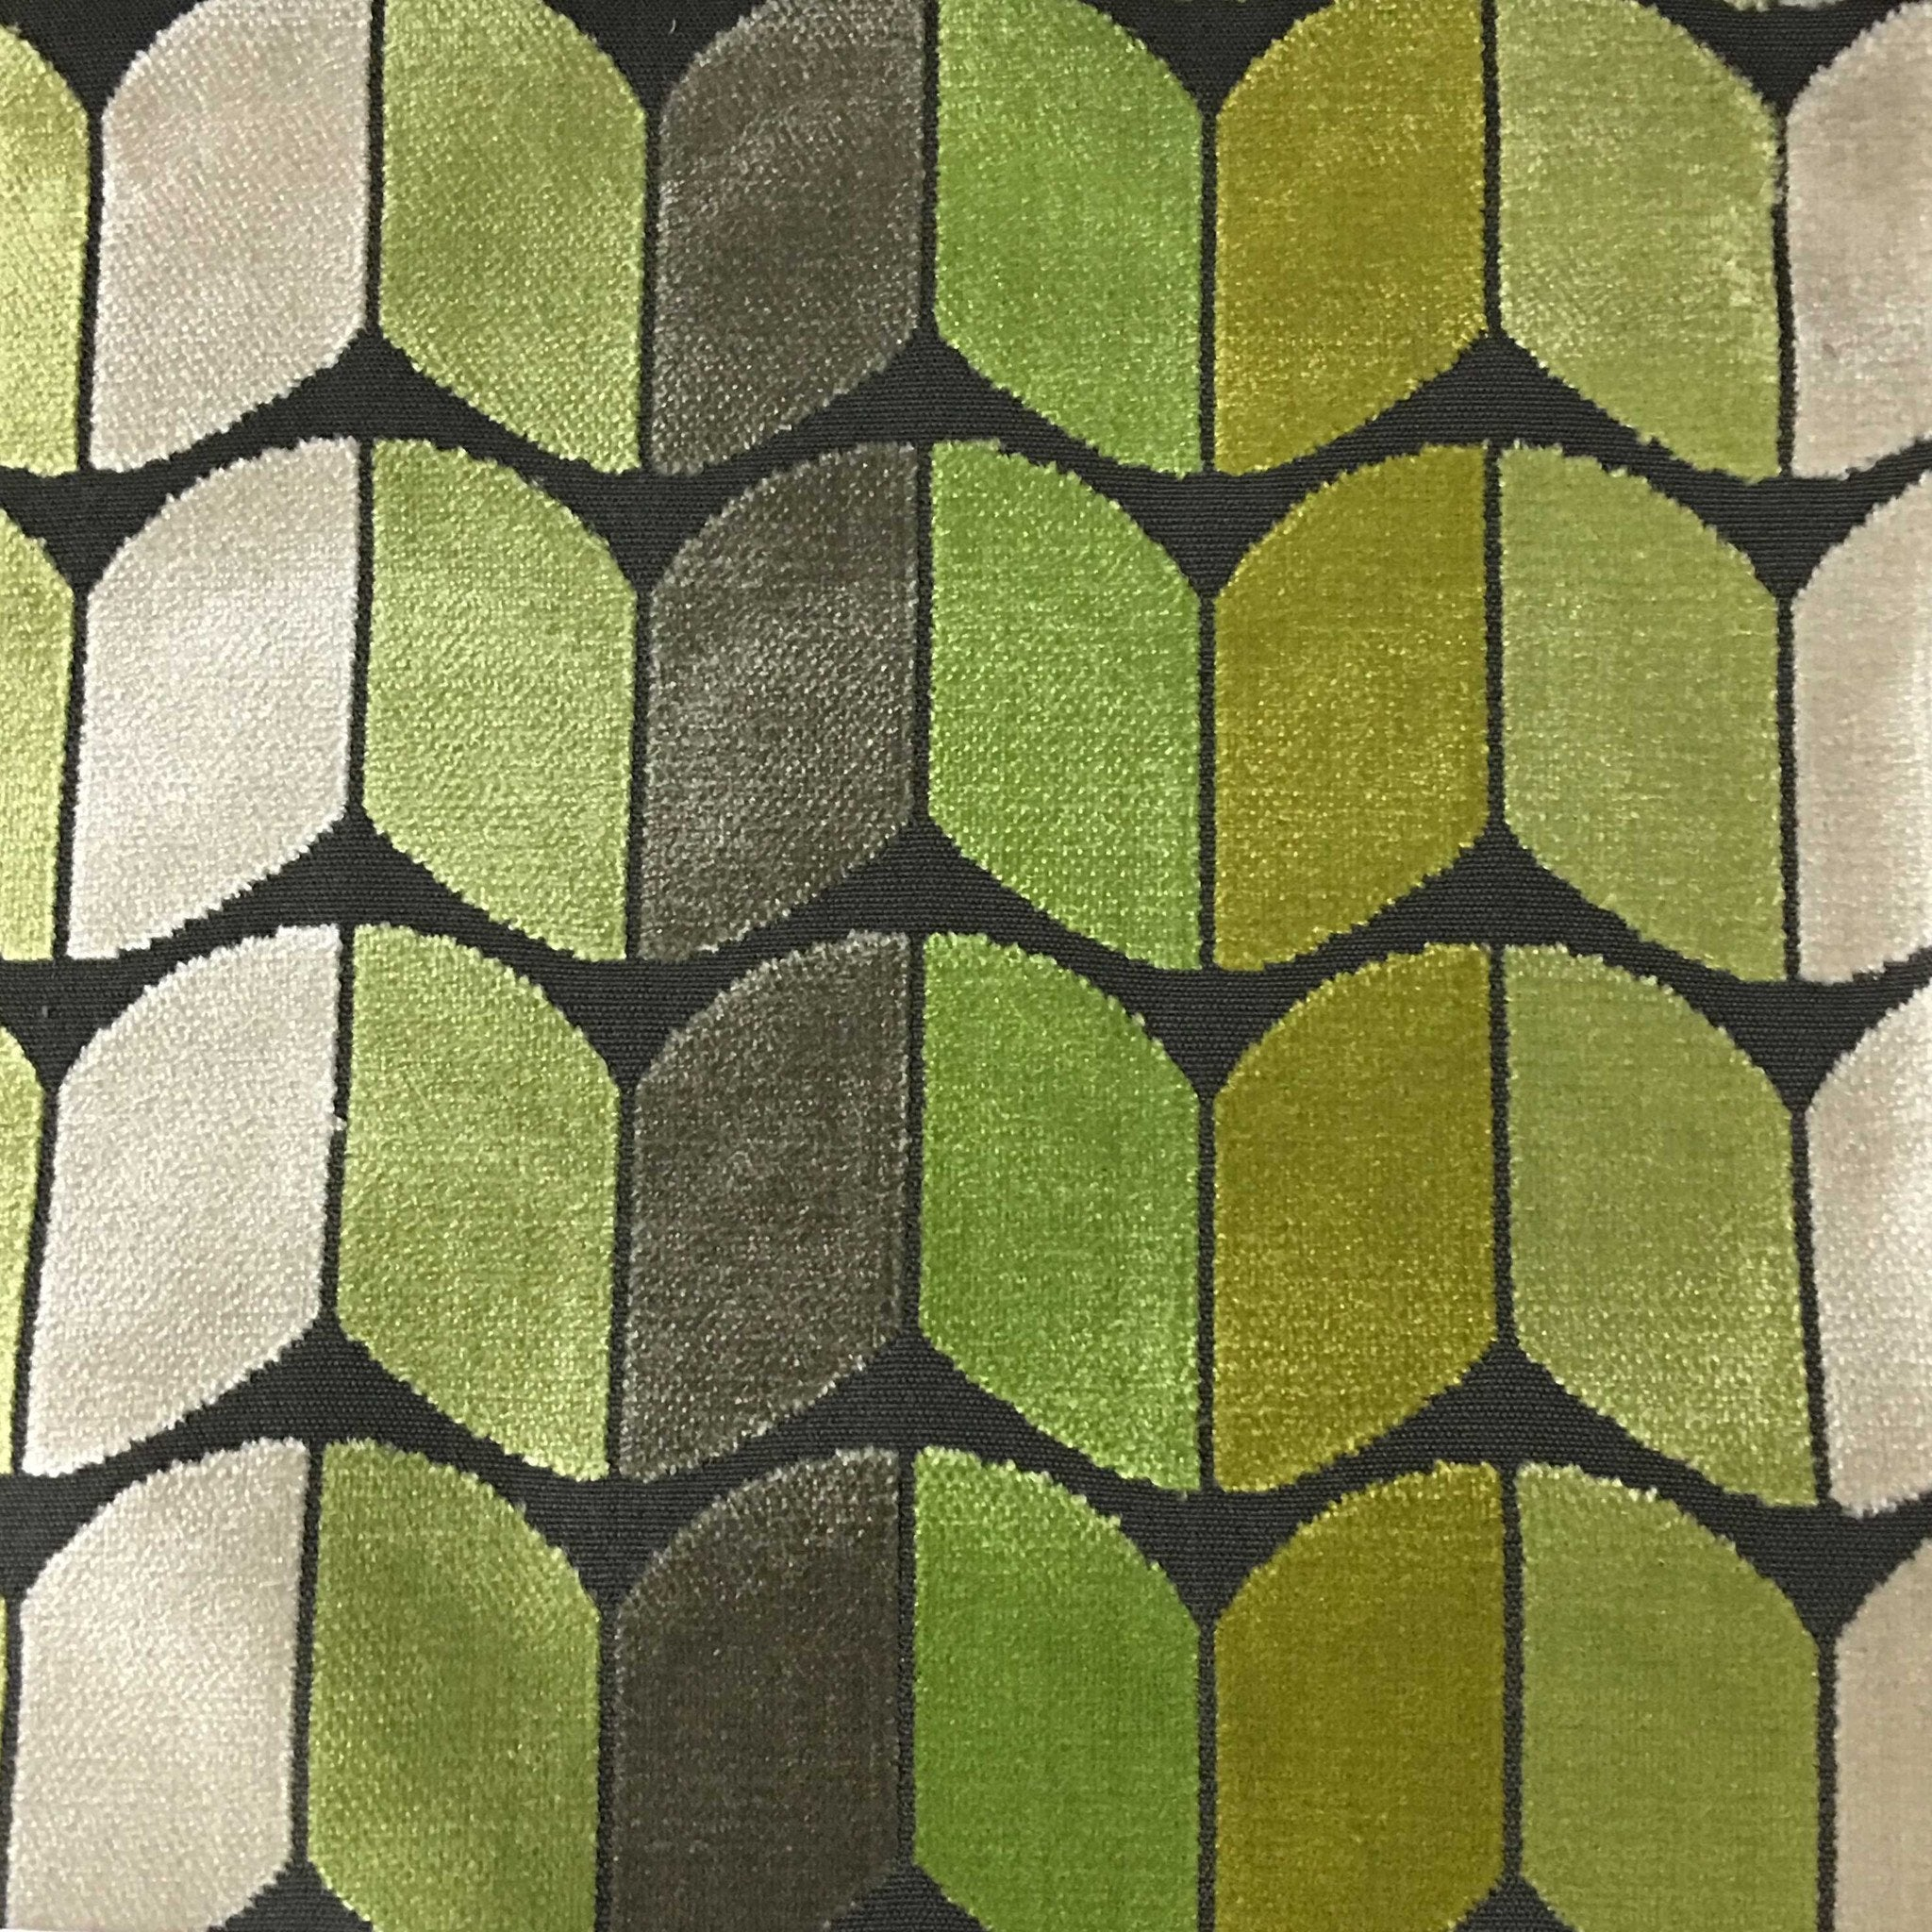 holland arrow cut velvet fabric upholstery fabric by the yard available in 13 colors